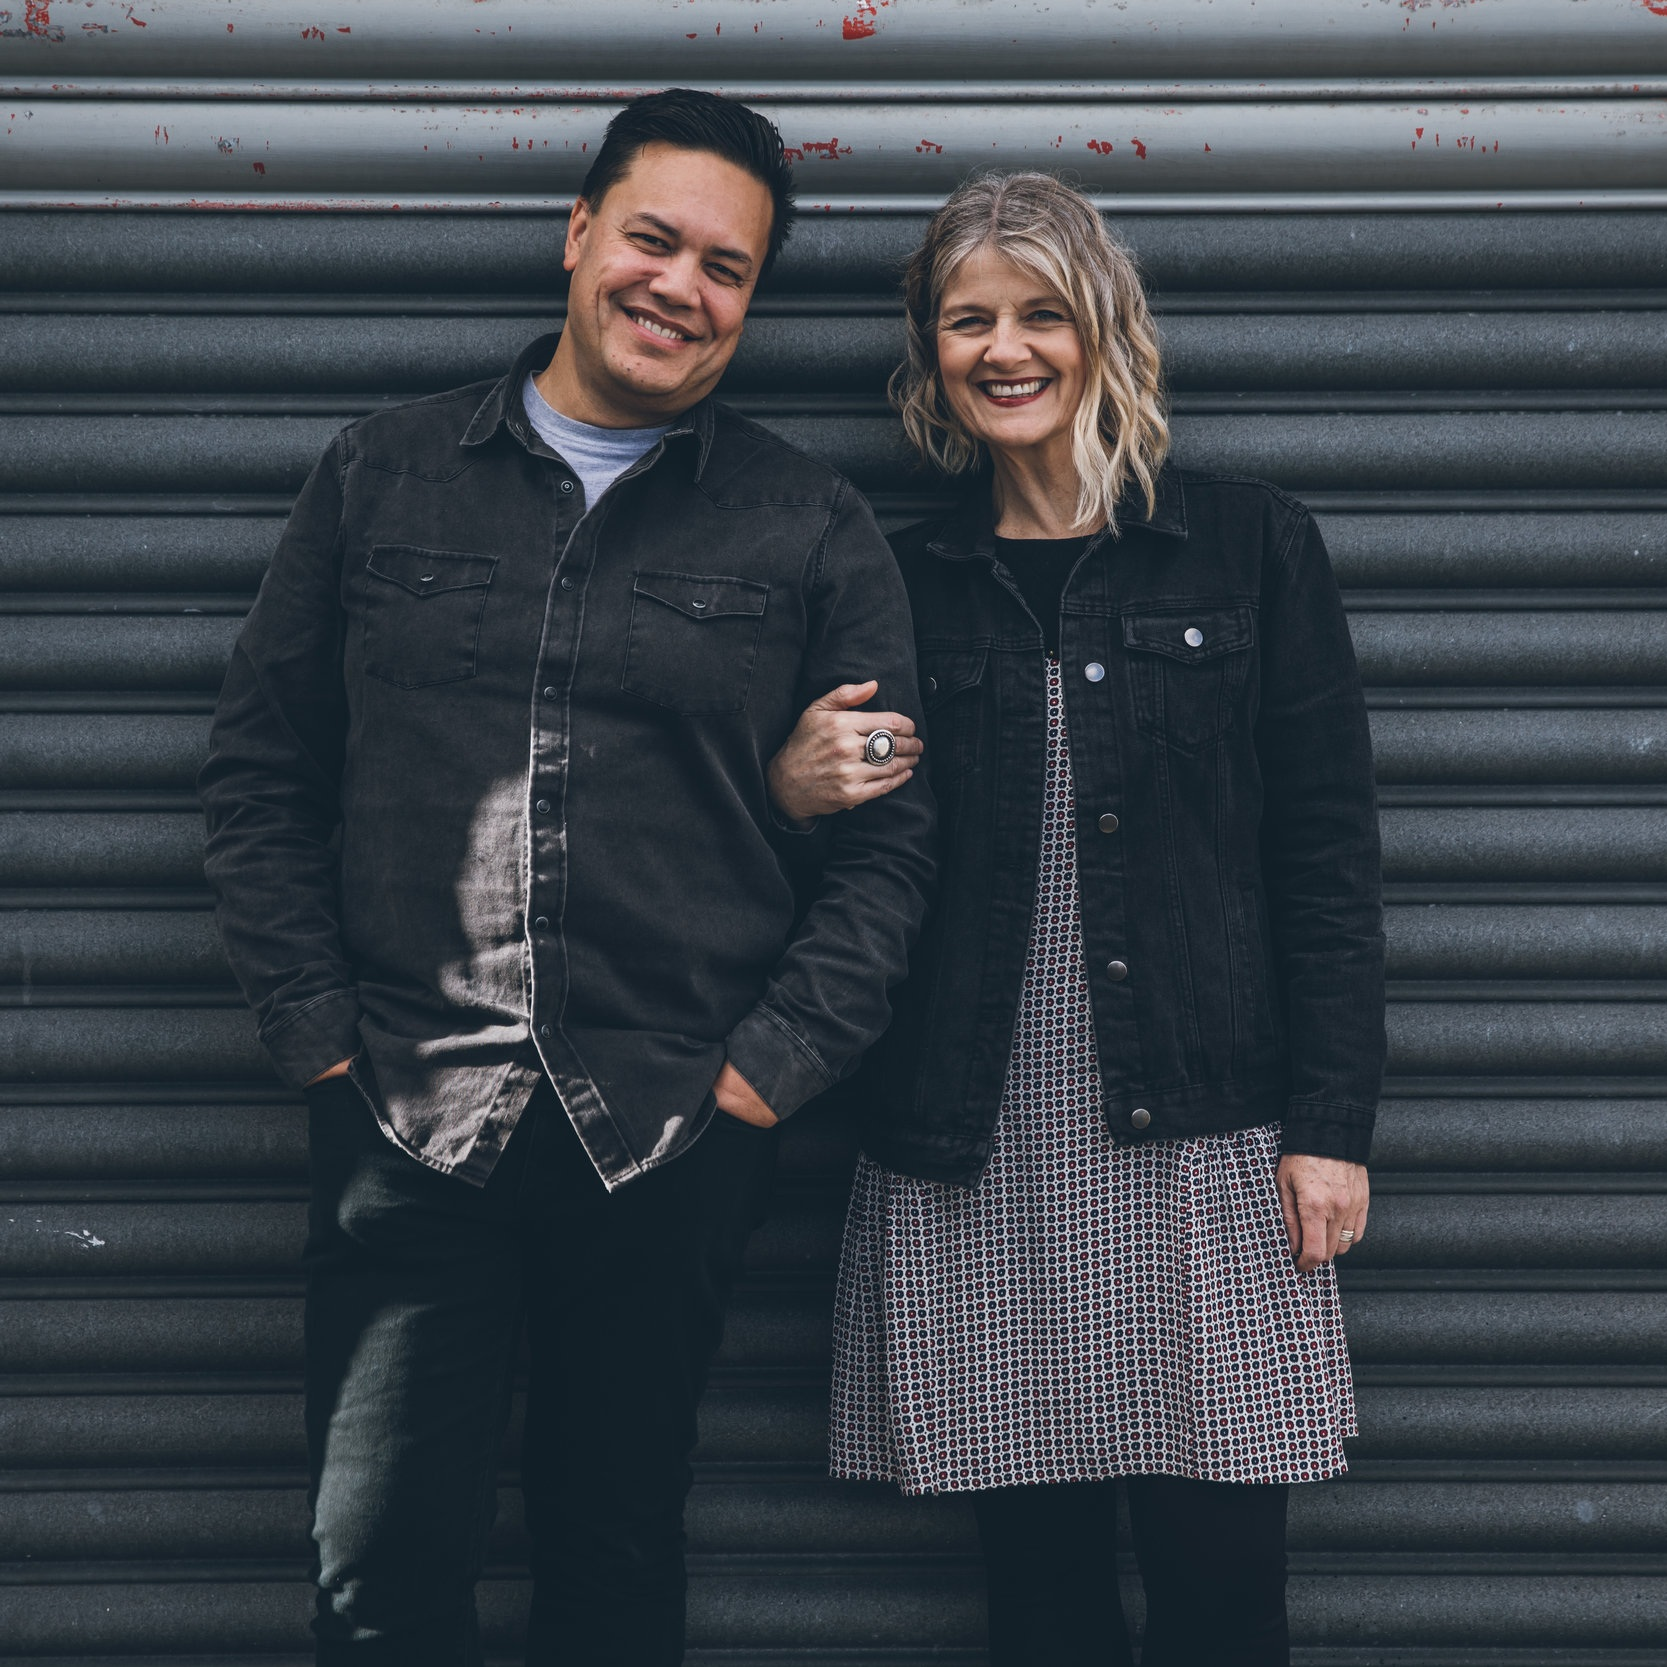 """PASTOR WAYNE & LIBBY HUIRUA    Worship Pastors, Equippers Church Auckland     """"Libby and I are honoured to call Alarice and Calvin friends and fellow warriors in ministry.   Their work with Awaken Generation is reflective of their obvious anointing for powerful ministry, for the local church and for those with a calling to Christian arts and worship. They have a proven track record within their own nation and abroad and this doesn't happen without much sacrifice and prioritisation.    It's been beautiful to observe their journey through the years individually and then to watch the Lord bring them together as a powerful team now leading so many others into their God-given destiny using their God-given gifts! We highly recommend Alarice and Calvin and are 100% behind Awaken Generation!"""""""